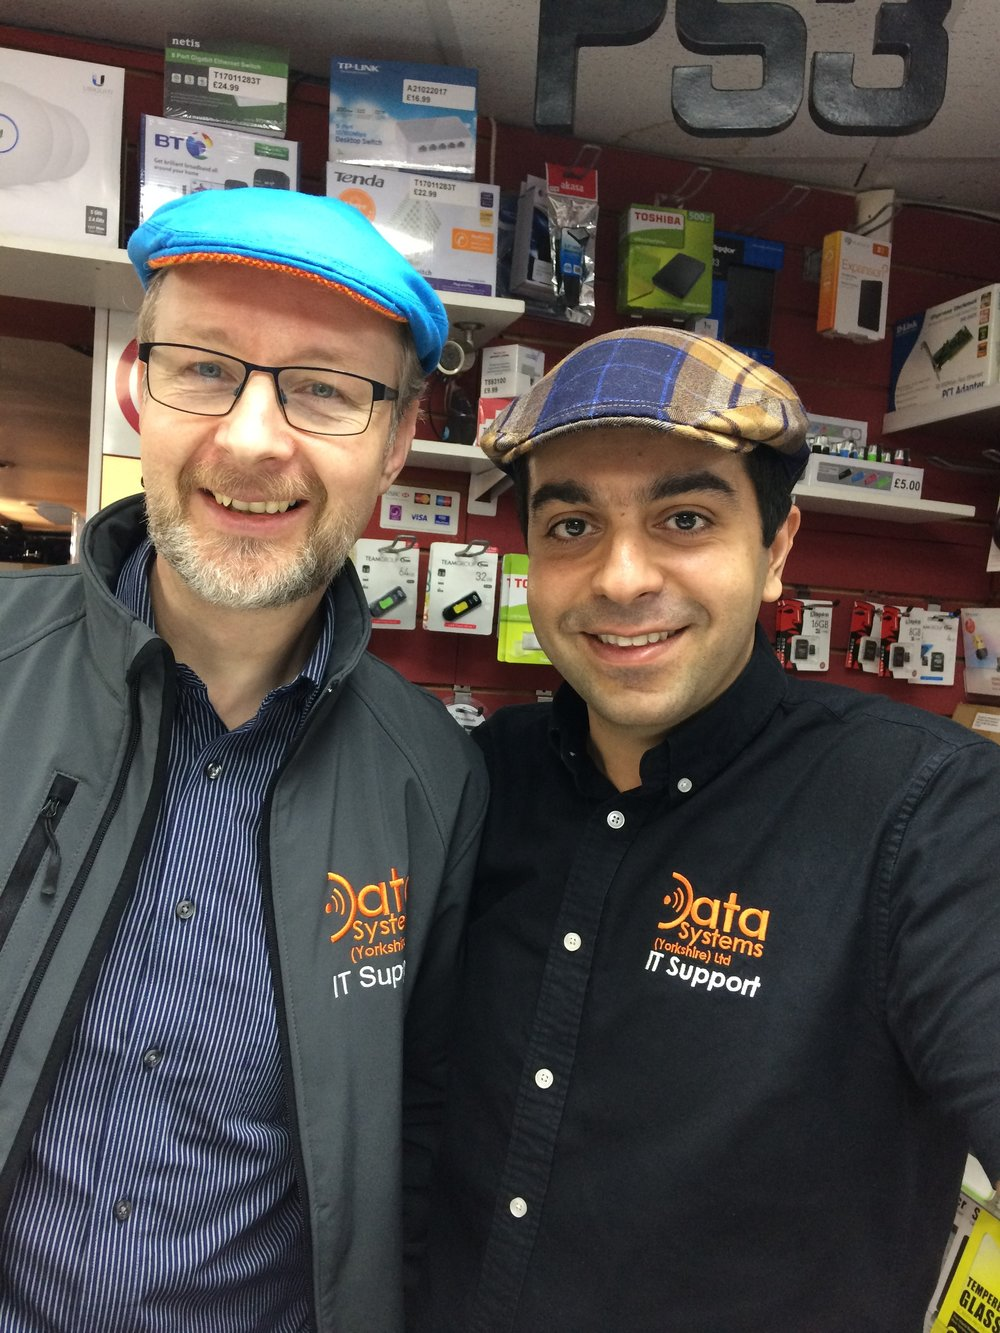 The guys from Data Systems rocking their caps for Flat Cap Friday